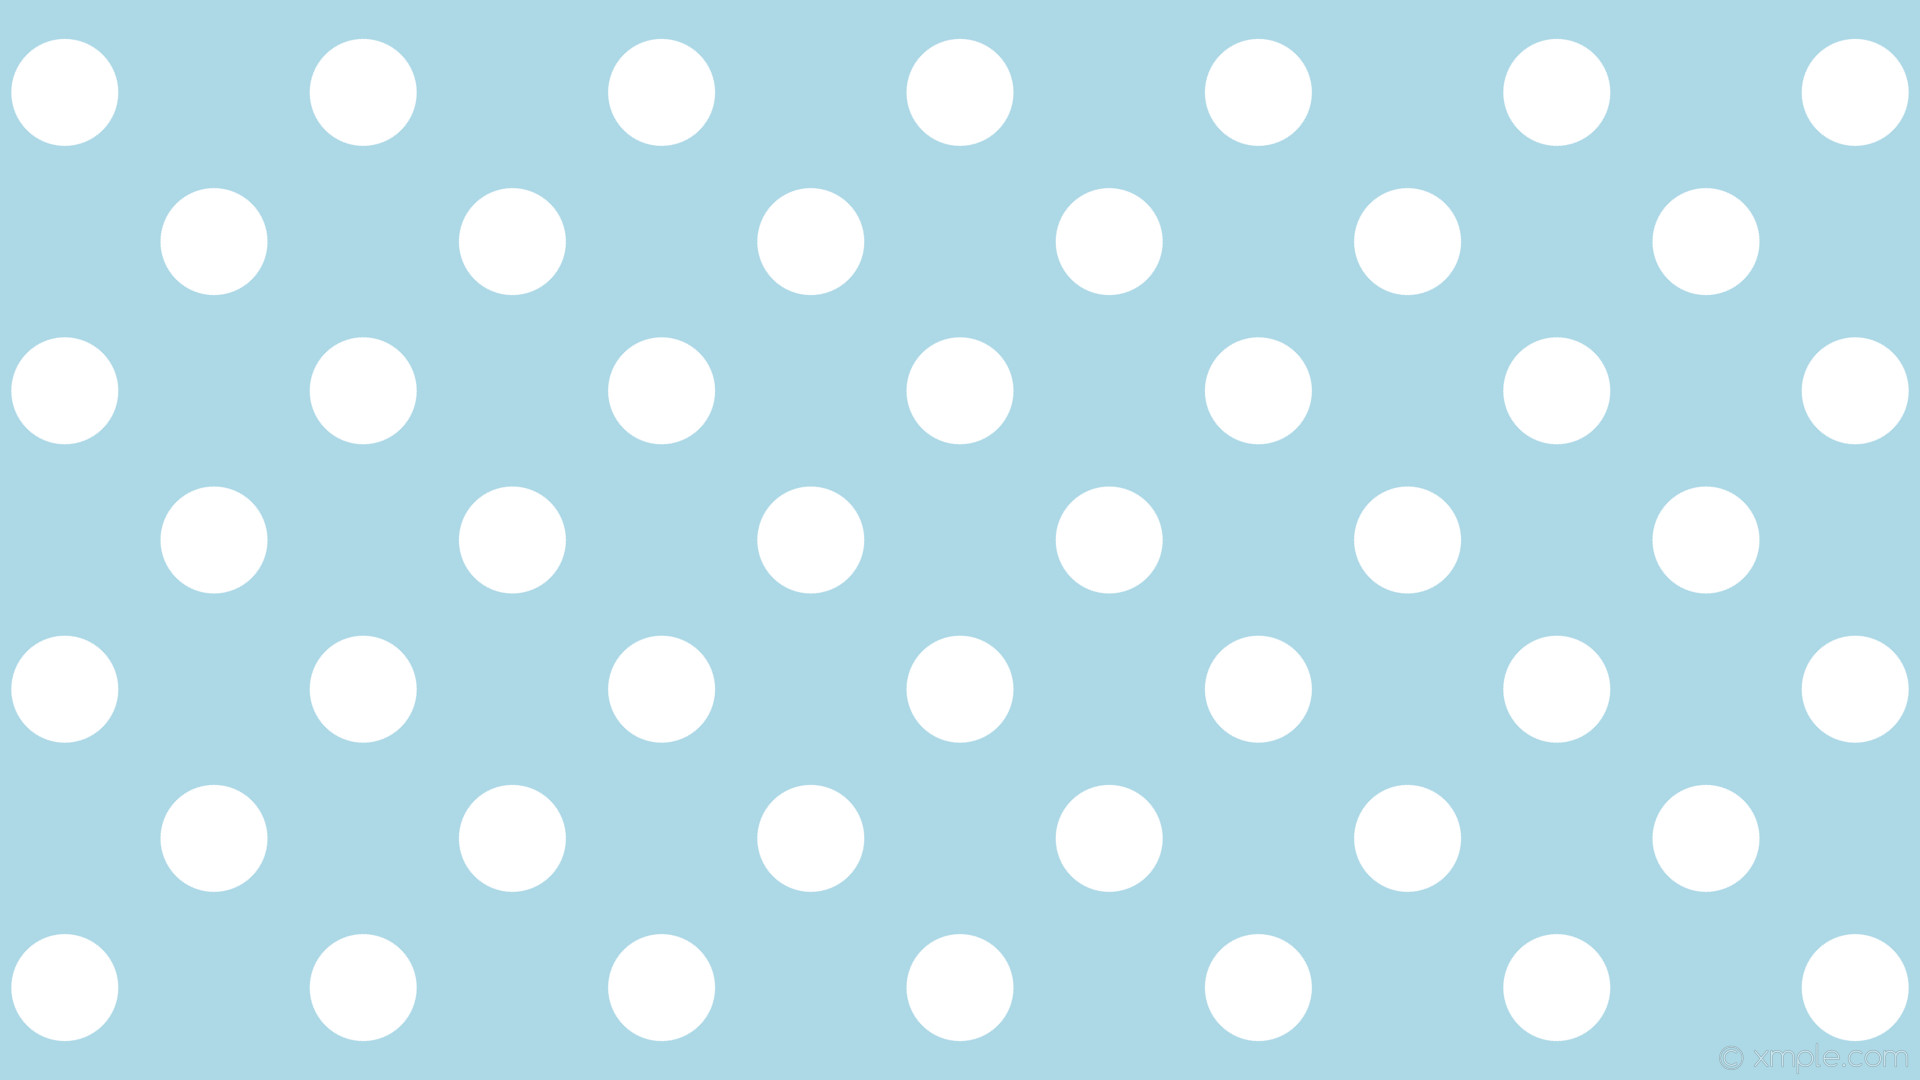 wallpaper white spots blue polka dots light blue #add8e6 #ffffff 45° 107px  211px